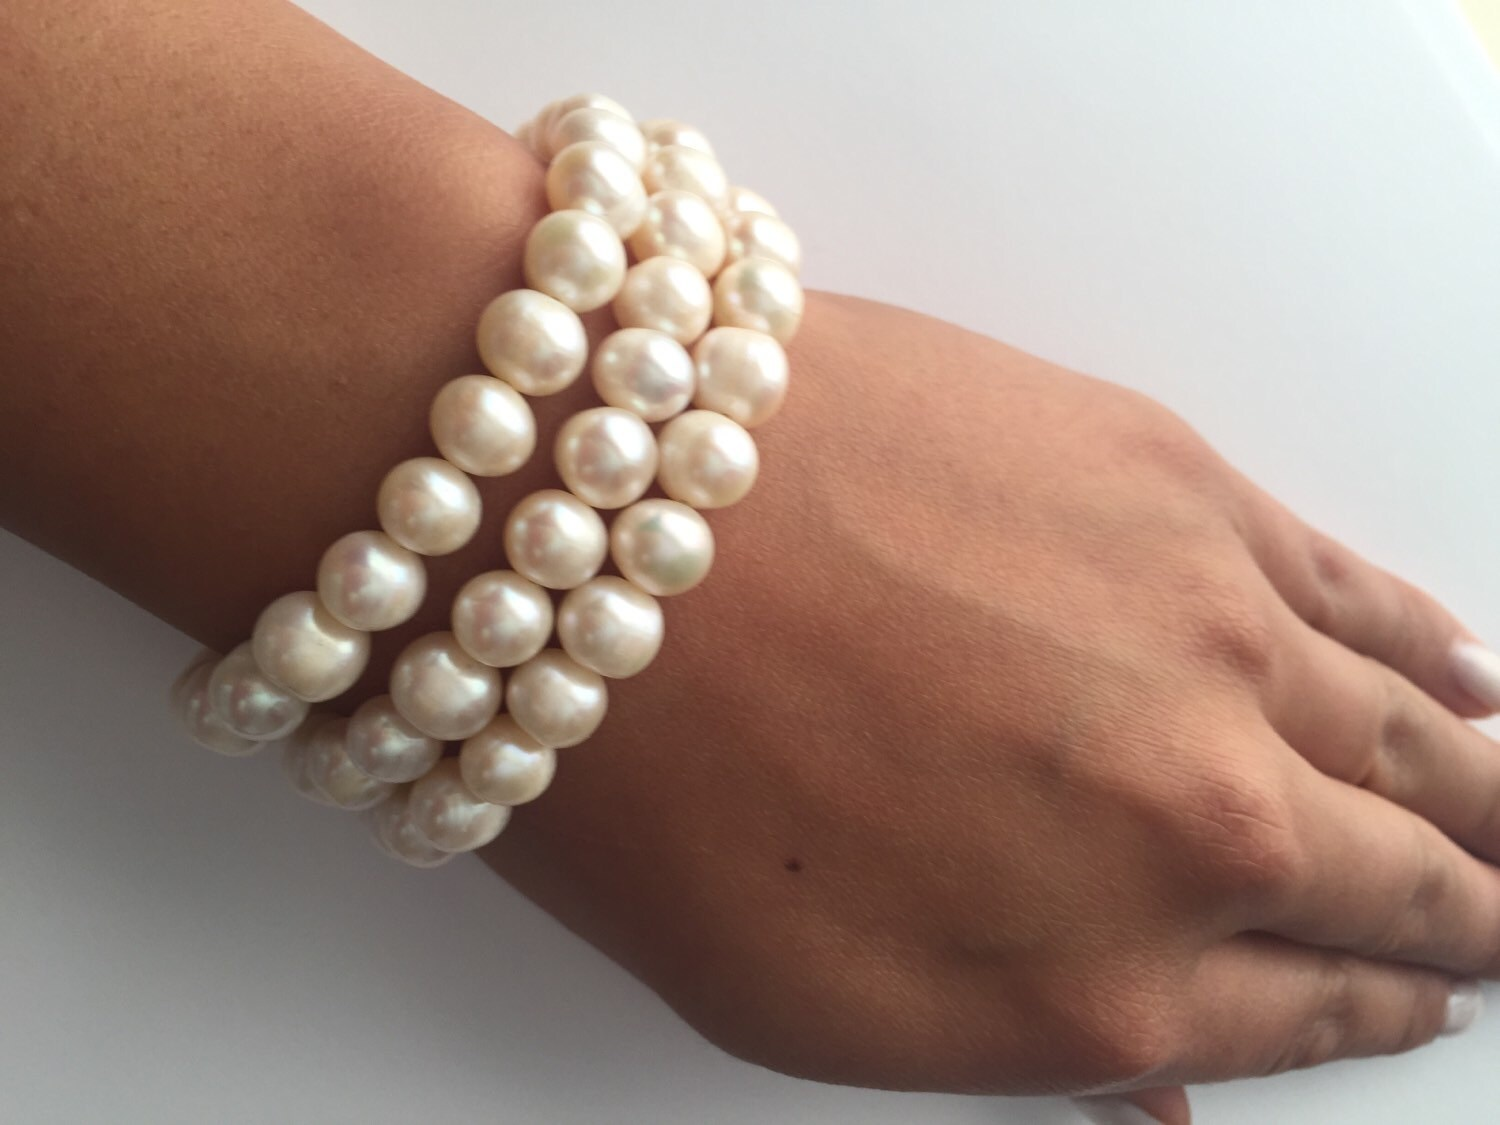 forever in bracelet made usa the products pearls kiel infinity patrick anchor james pearl